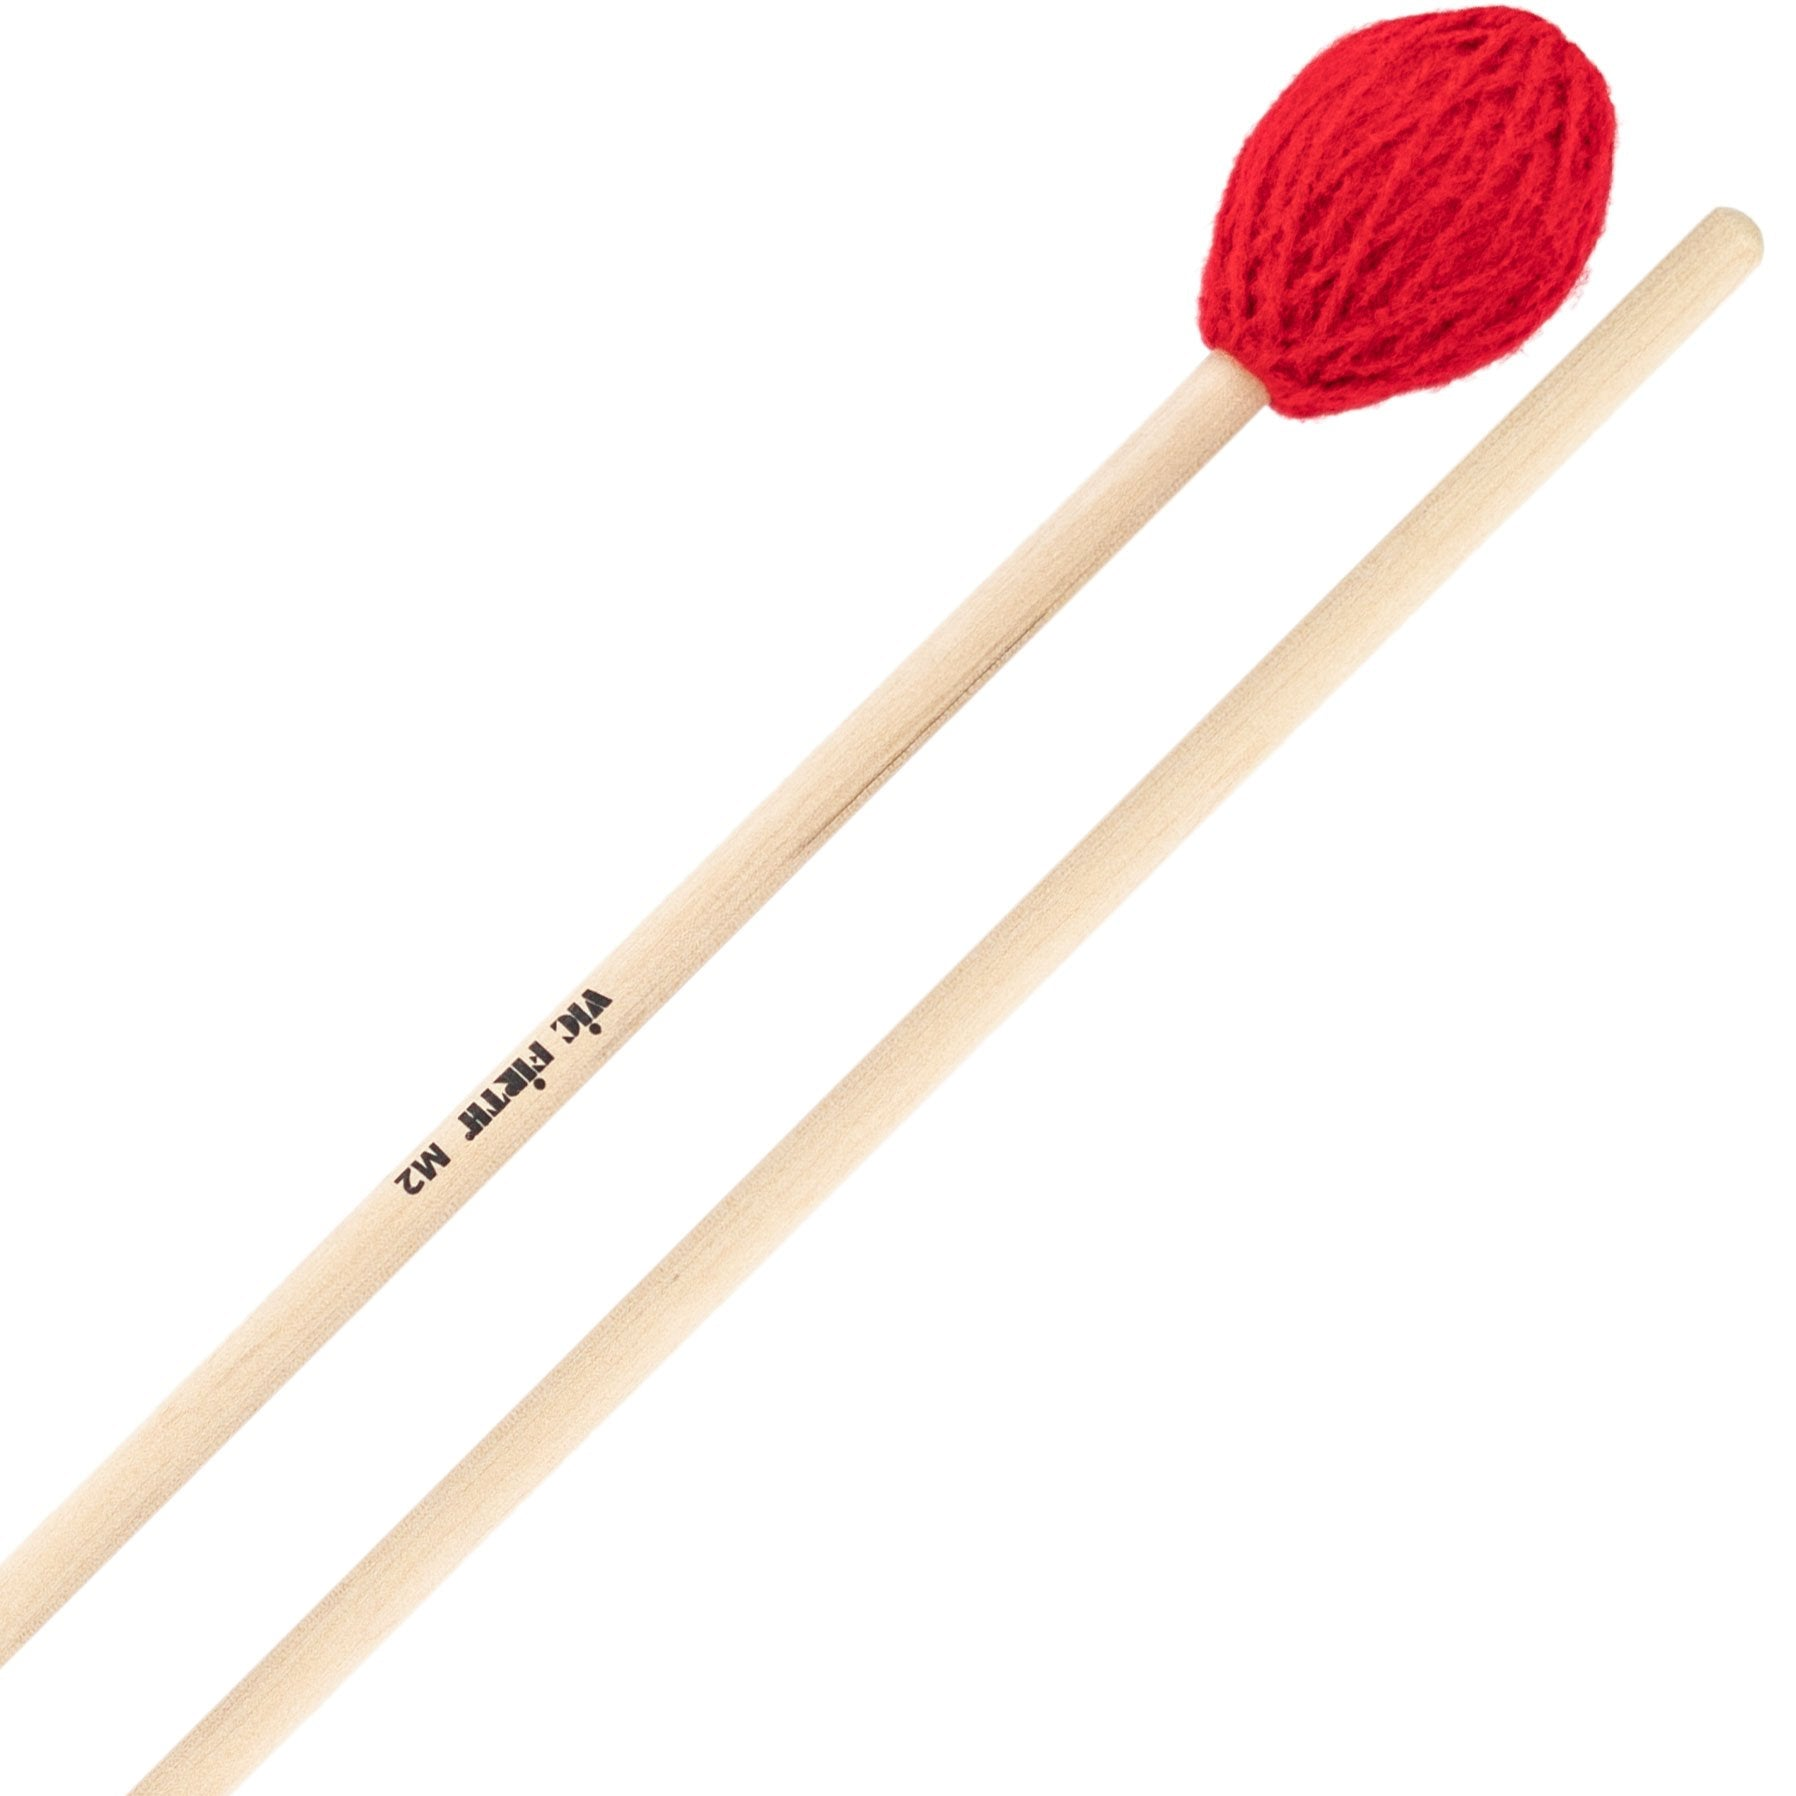 Vic Firth - American Custom Marimba Mallets-Percussion-Vic Firth-M2: Medium Hard-Music Elements